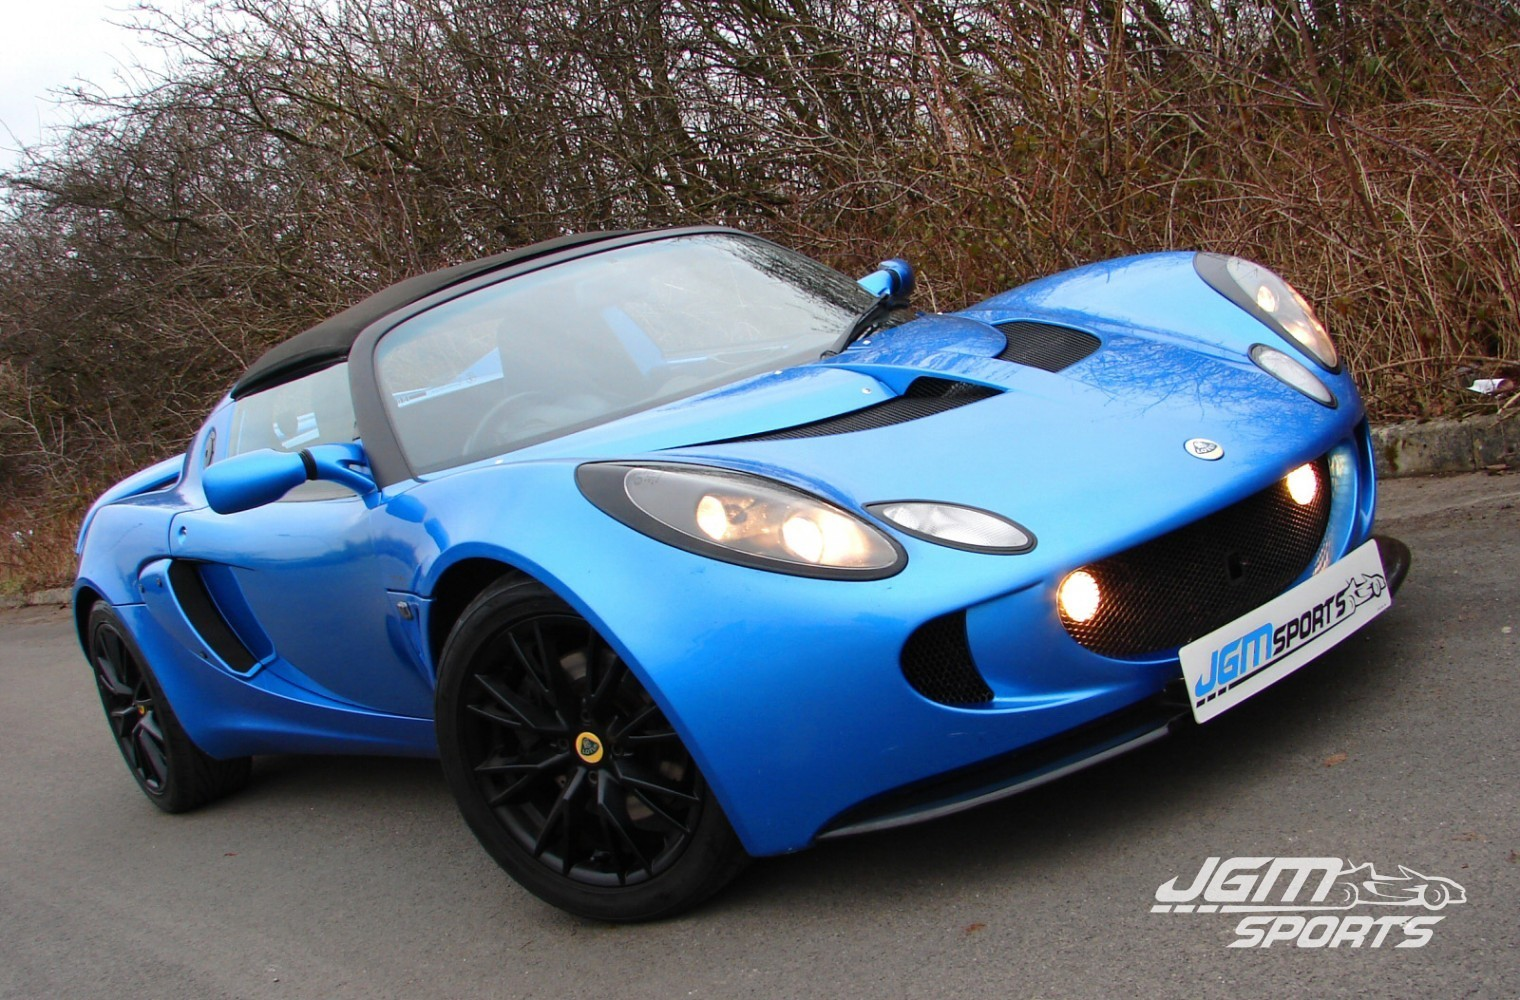 2002 s2 lotus elise 111s 160bhp exige front clam and wheels jgmsports. Black Bedroom Furniture Sets. Home Design Ideas